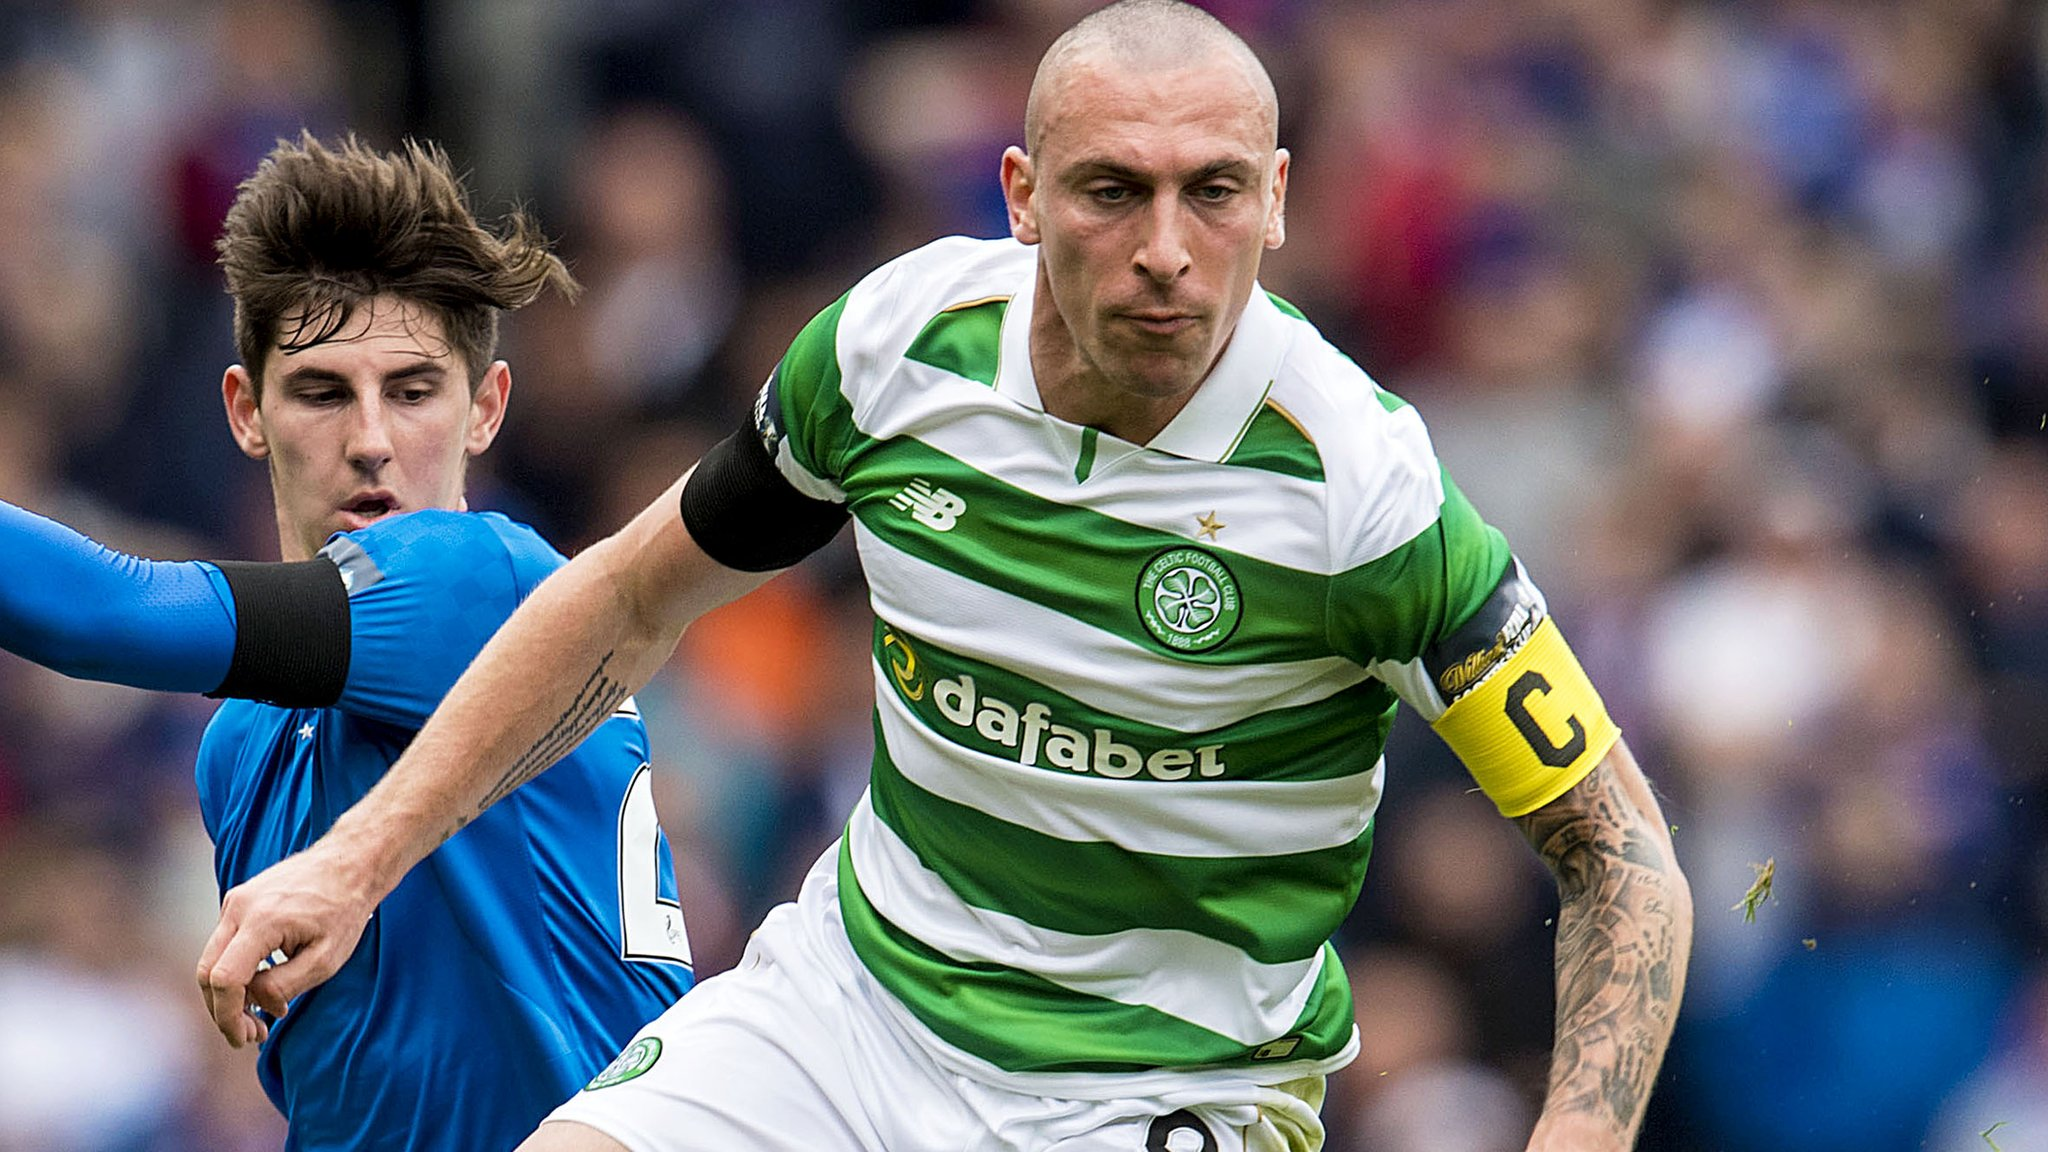 Celtic's Brown can face Rangers after winning red card appeal